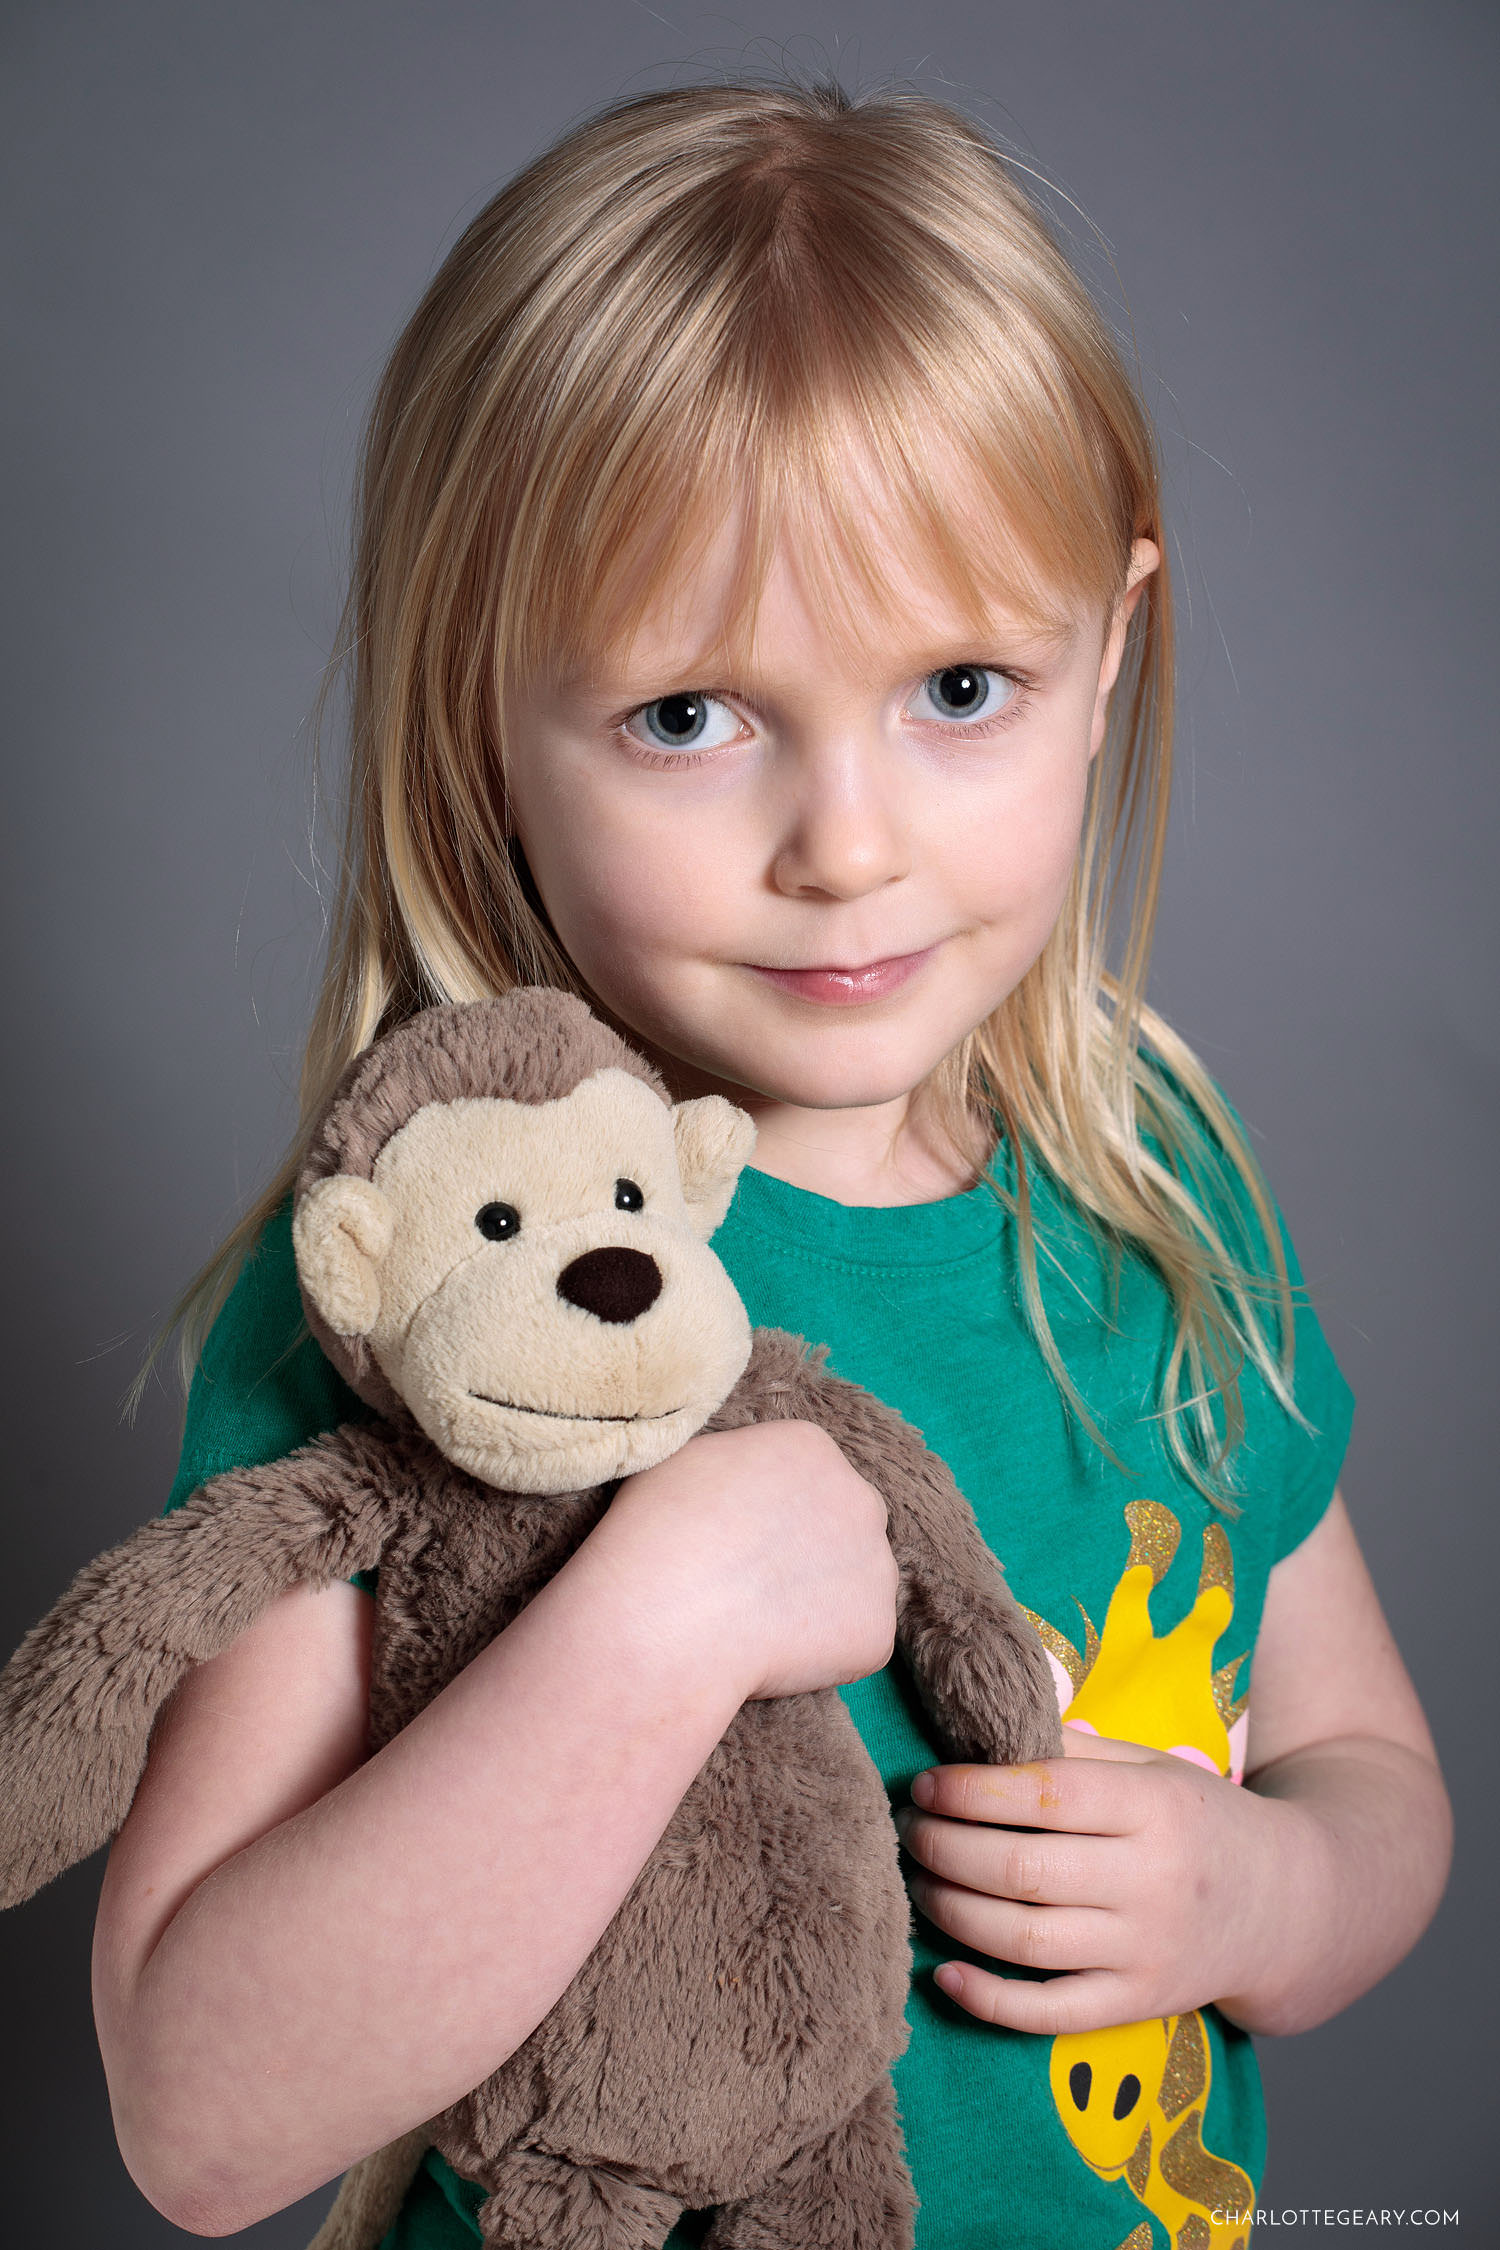 Portrait of a little girl with a stuffed animal